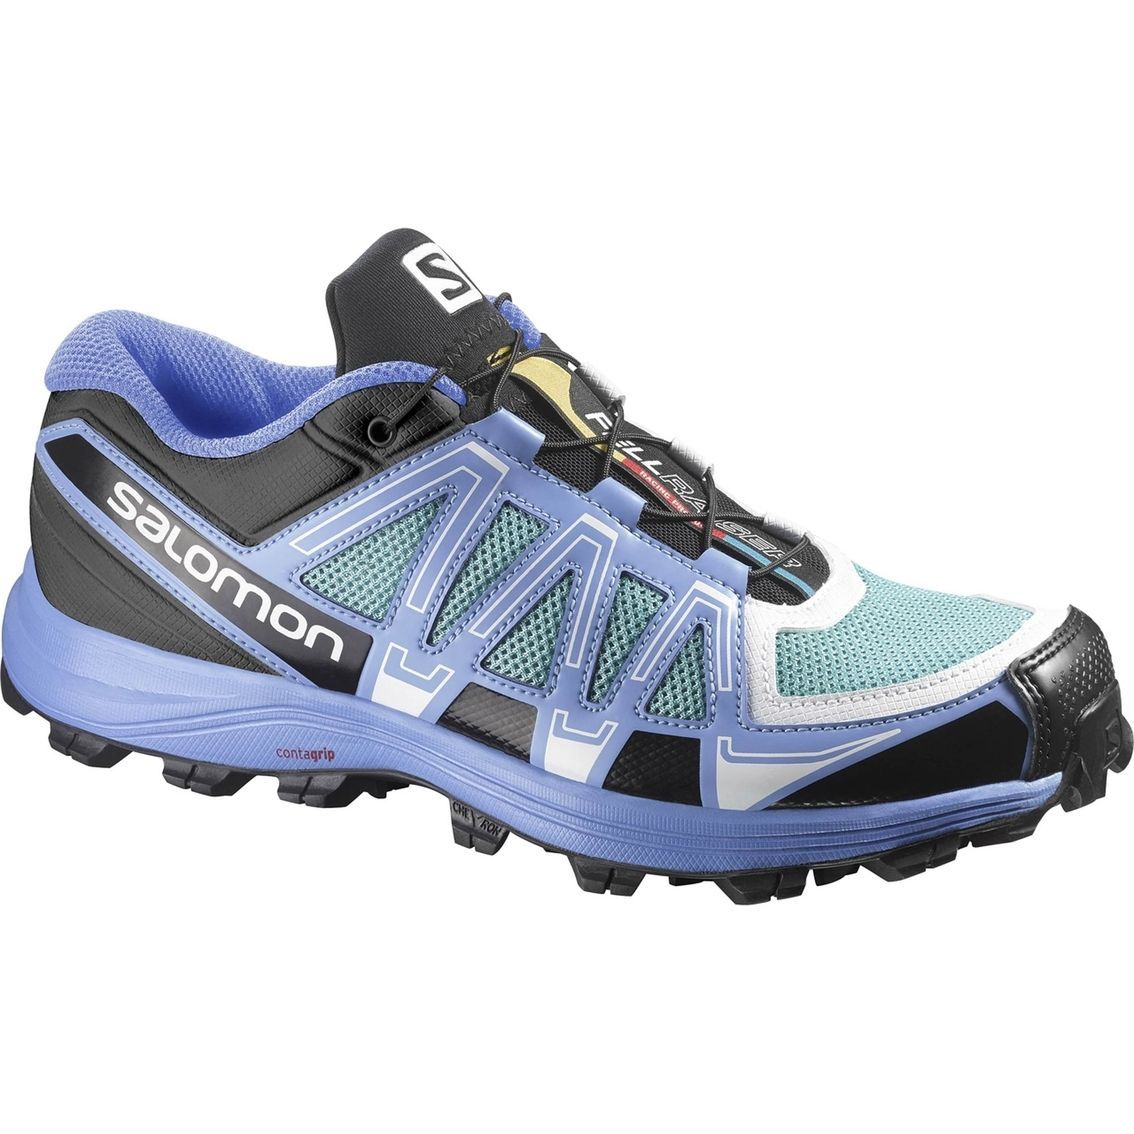 Other Unisex Clothing and Accs 167905: Salomon Women S Fellraiser W Trail Running Shoe, Topaz Petunia Blue White-Sz 8 -> BUY IT NOW ONLY: $77 on eBay!